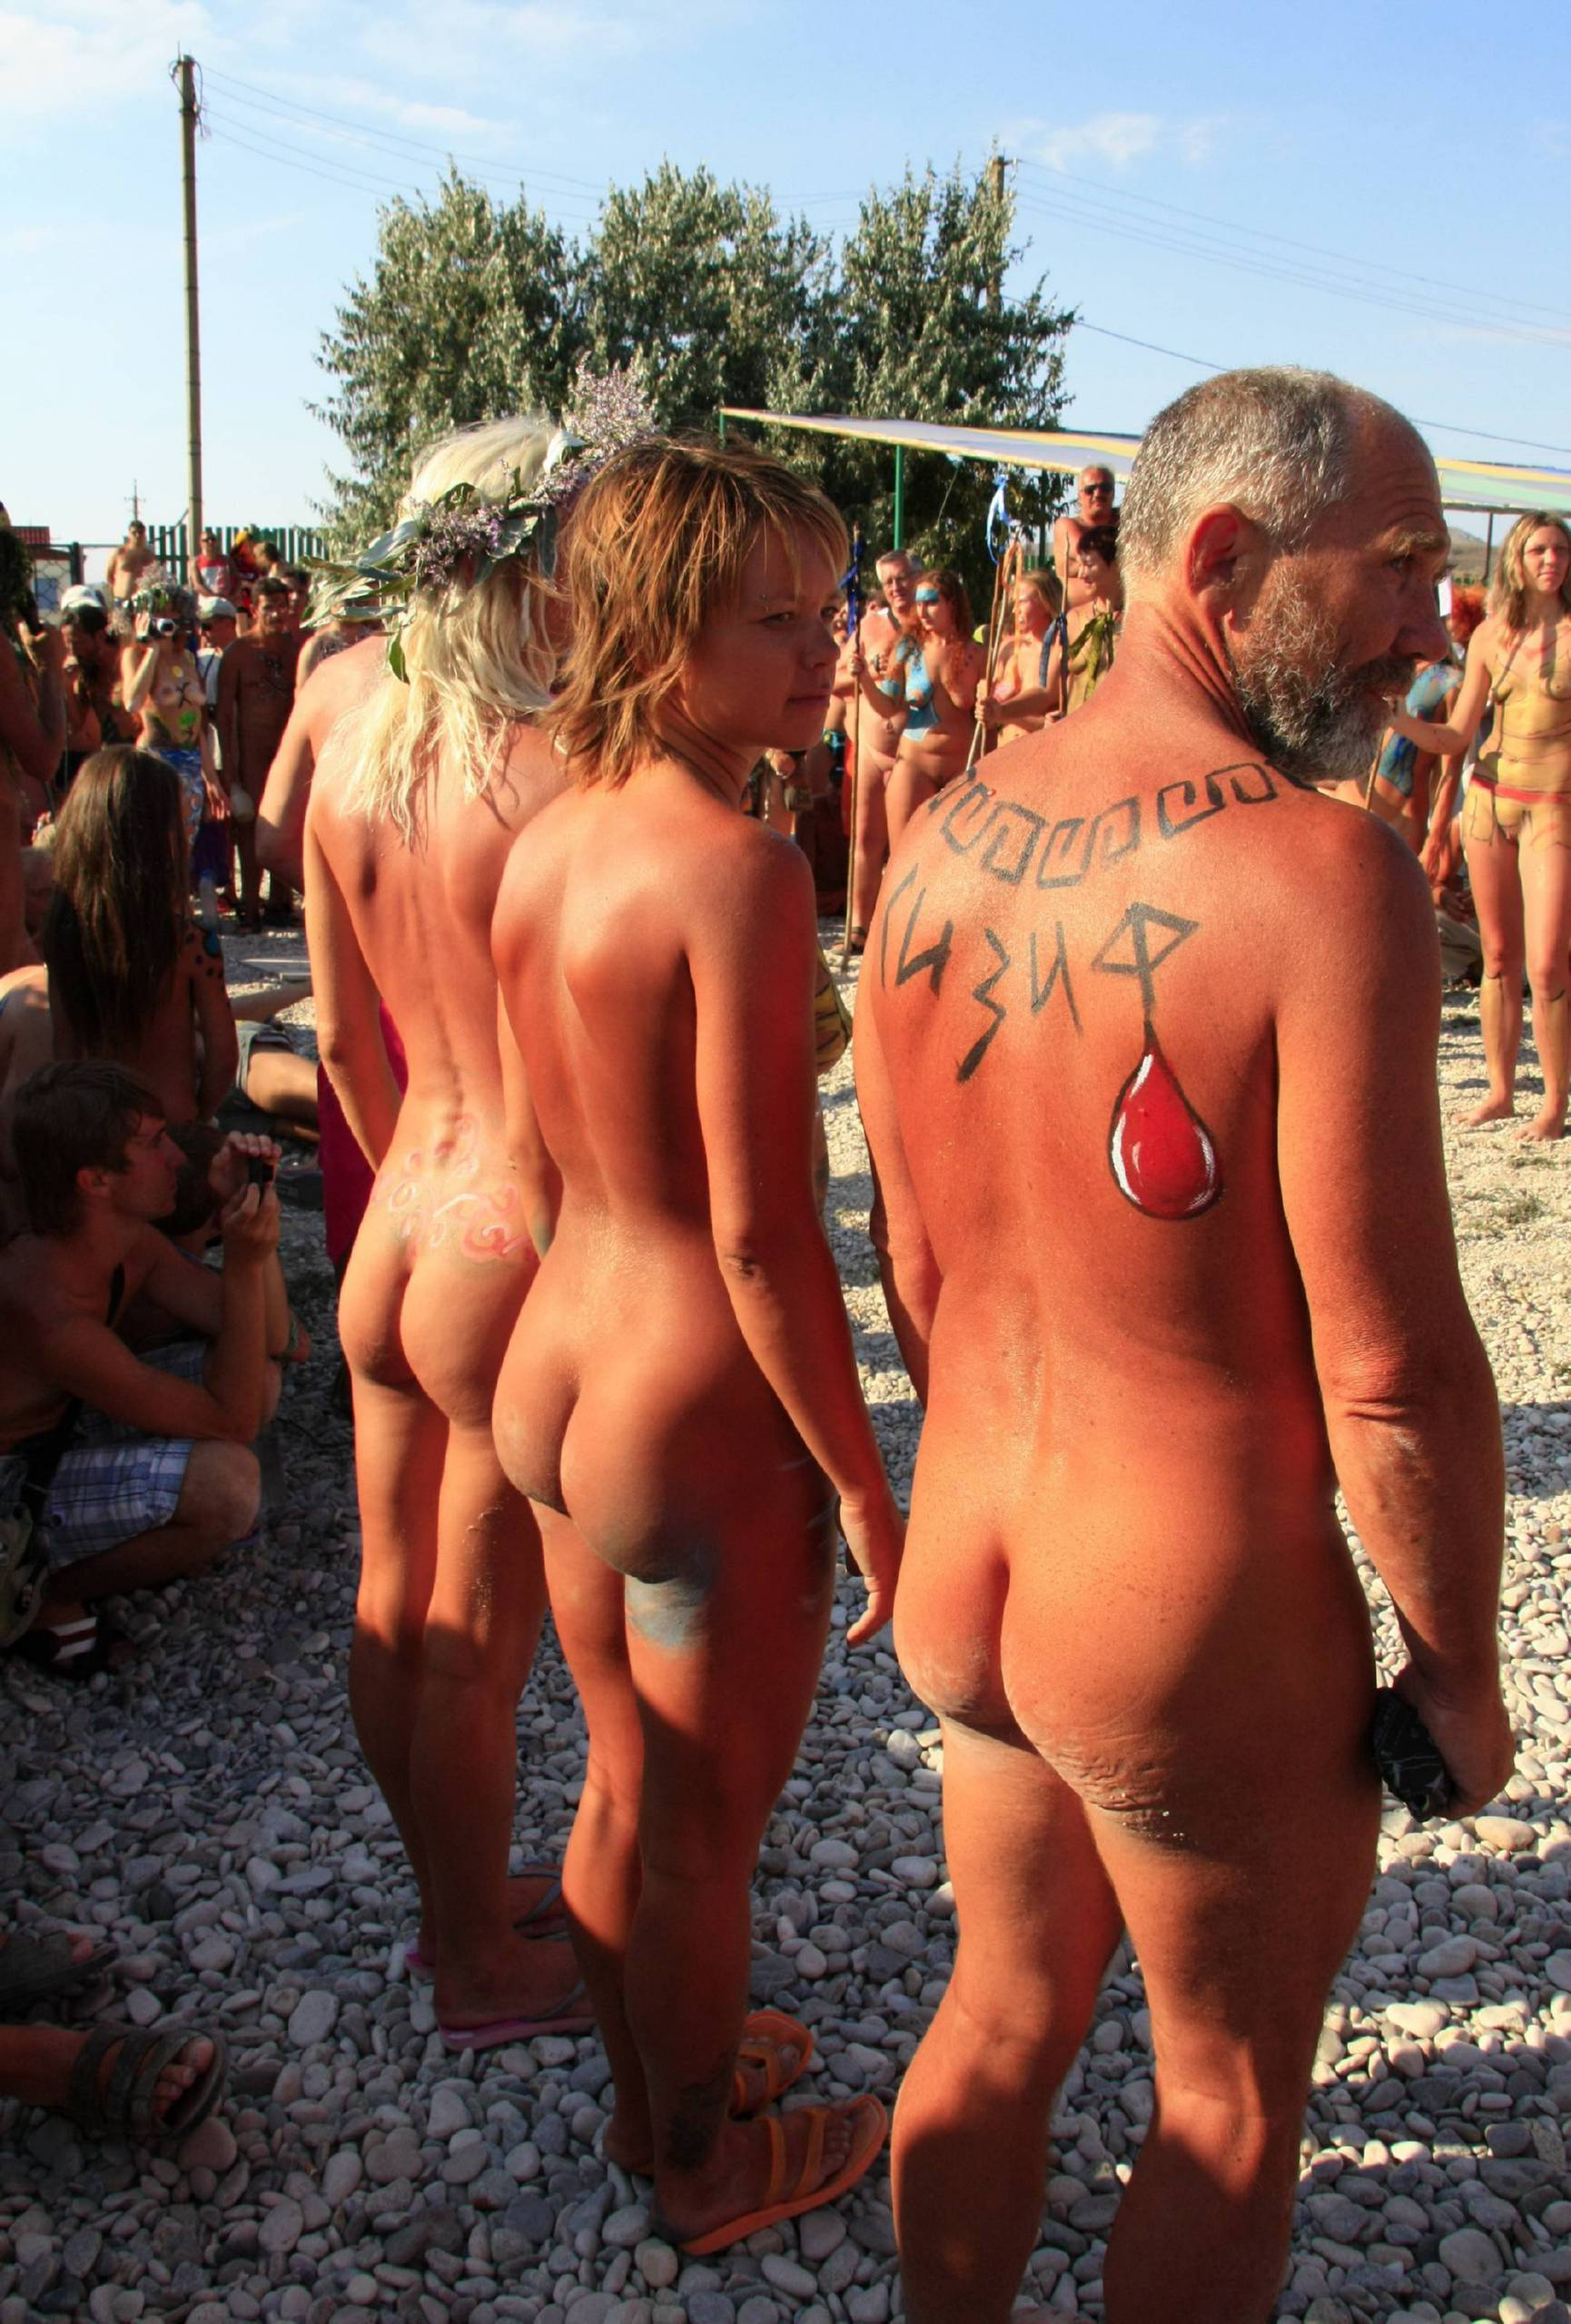 Pure Nudism Images Ukrainian Group Callouts - 1